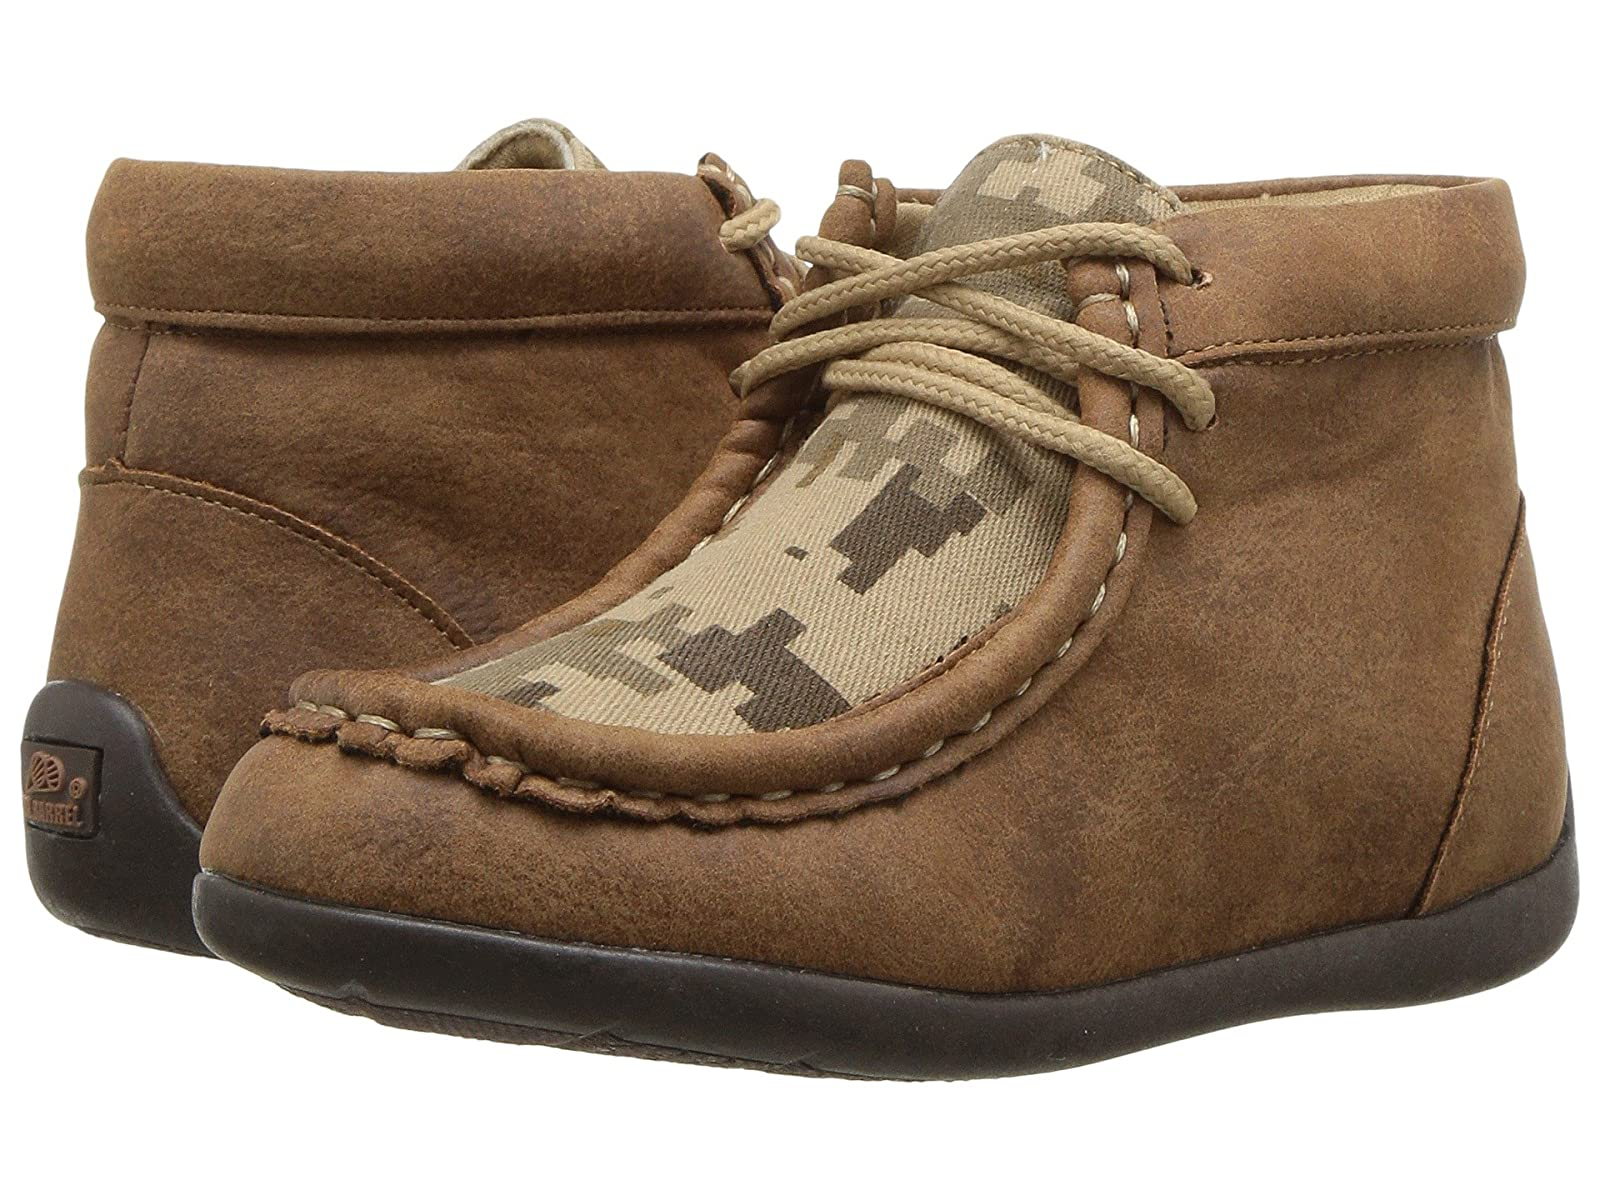 M&F Western Kids Barrett (Toddler/Little Kid)Affordable and distinctive shoes